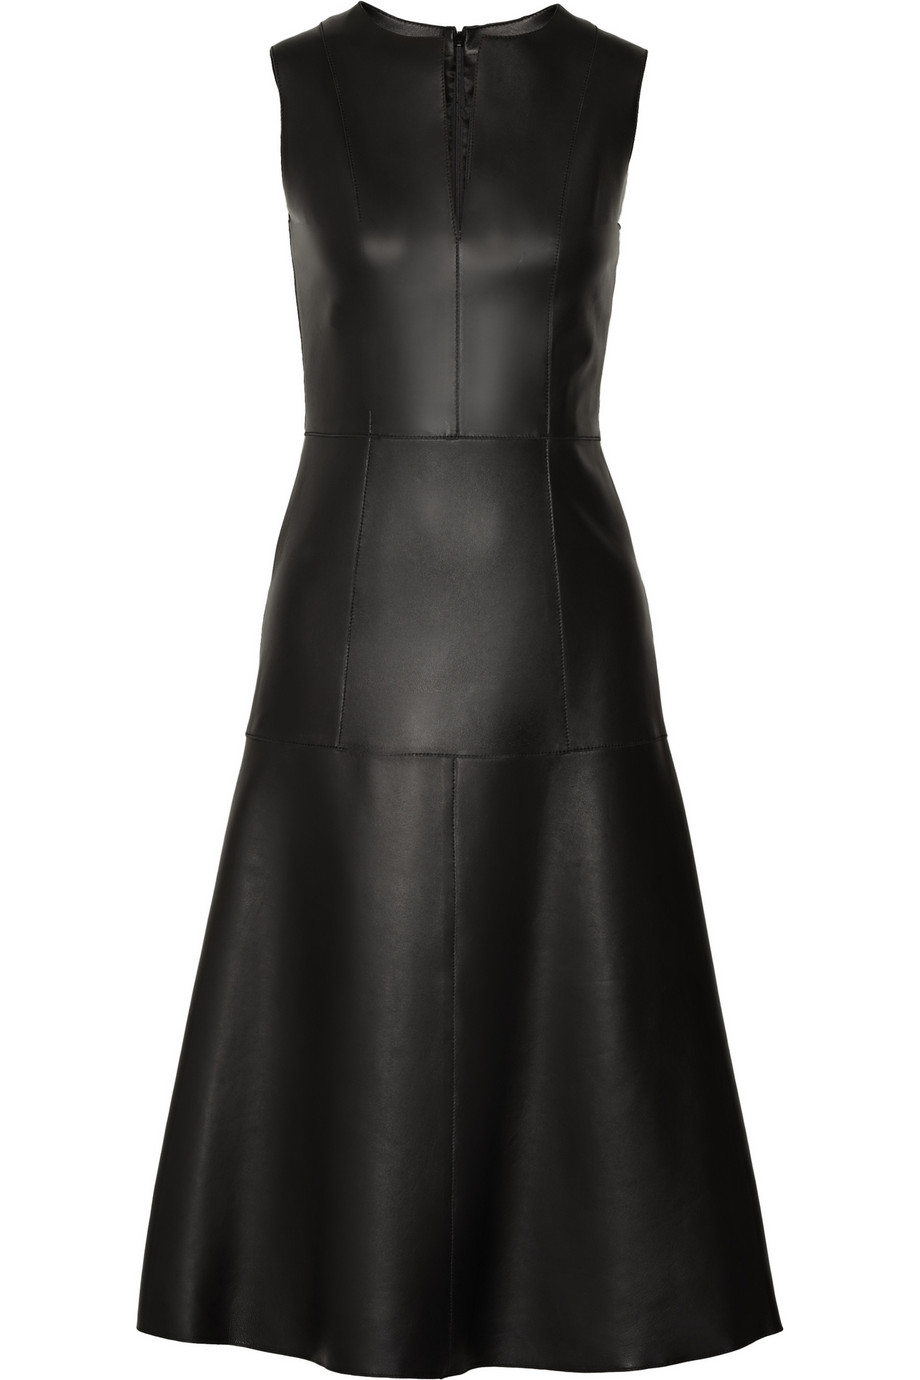 The Row Filpen Paneled Leather Dress In Black Lyst